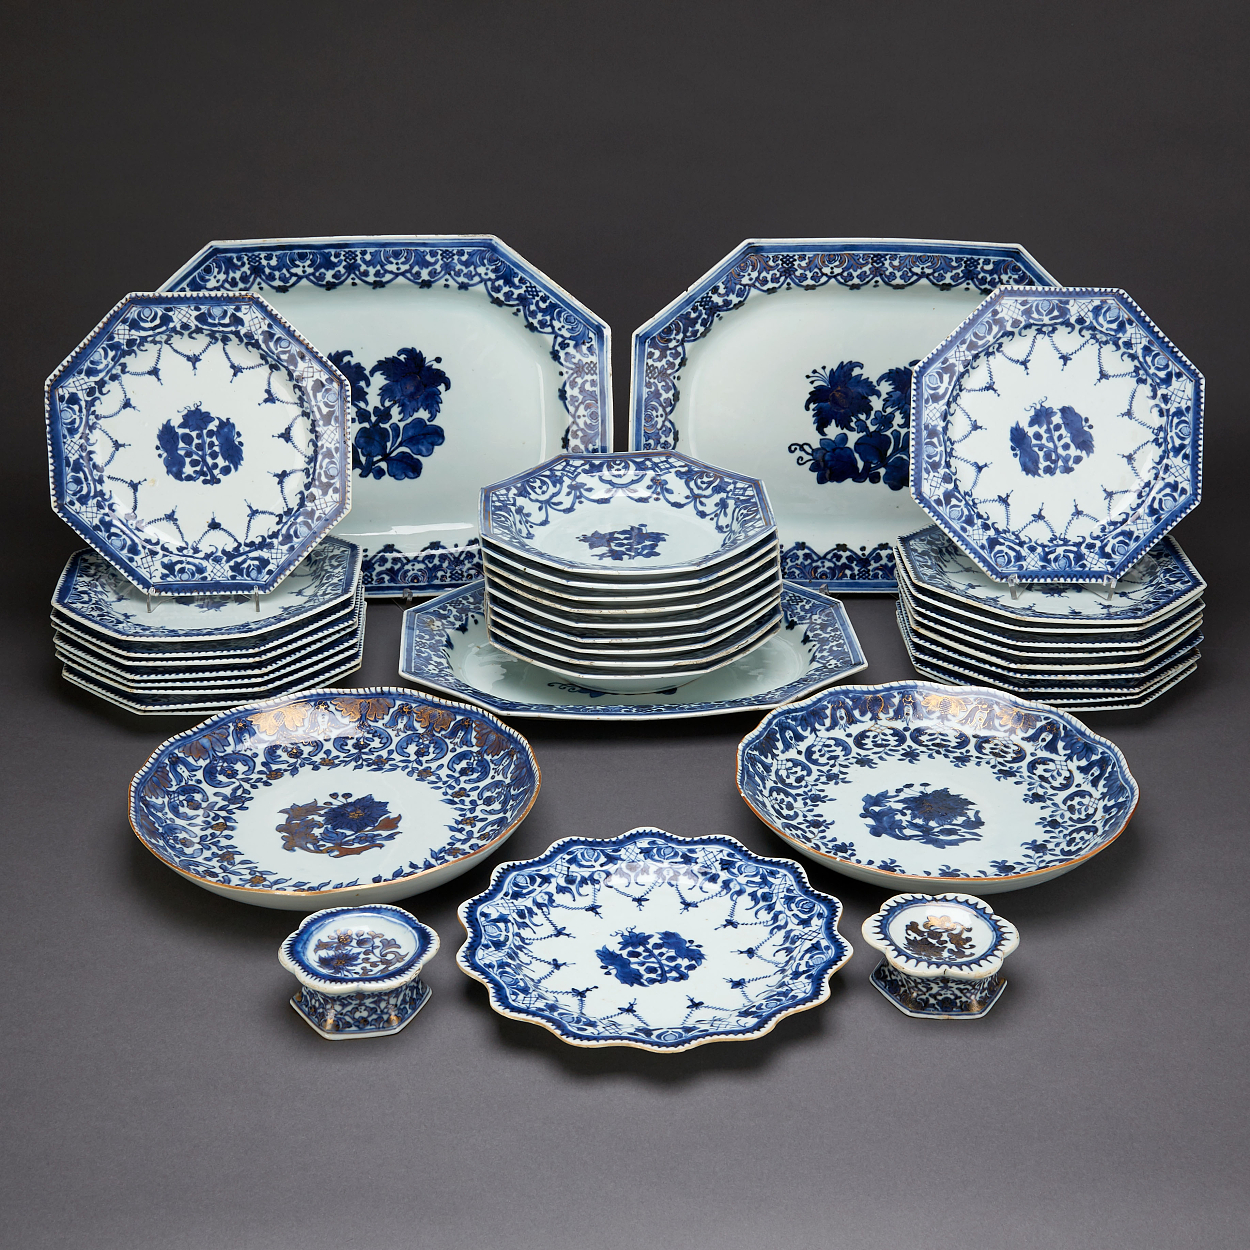 A 36 Piece Blue and White Dinner Service